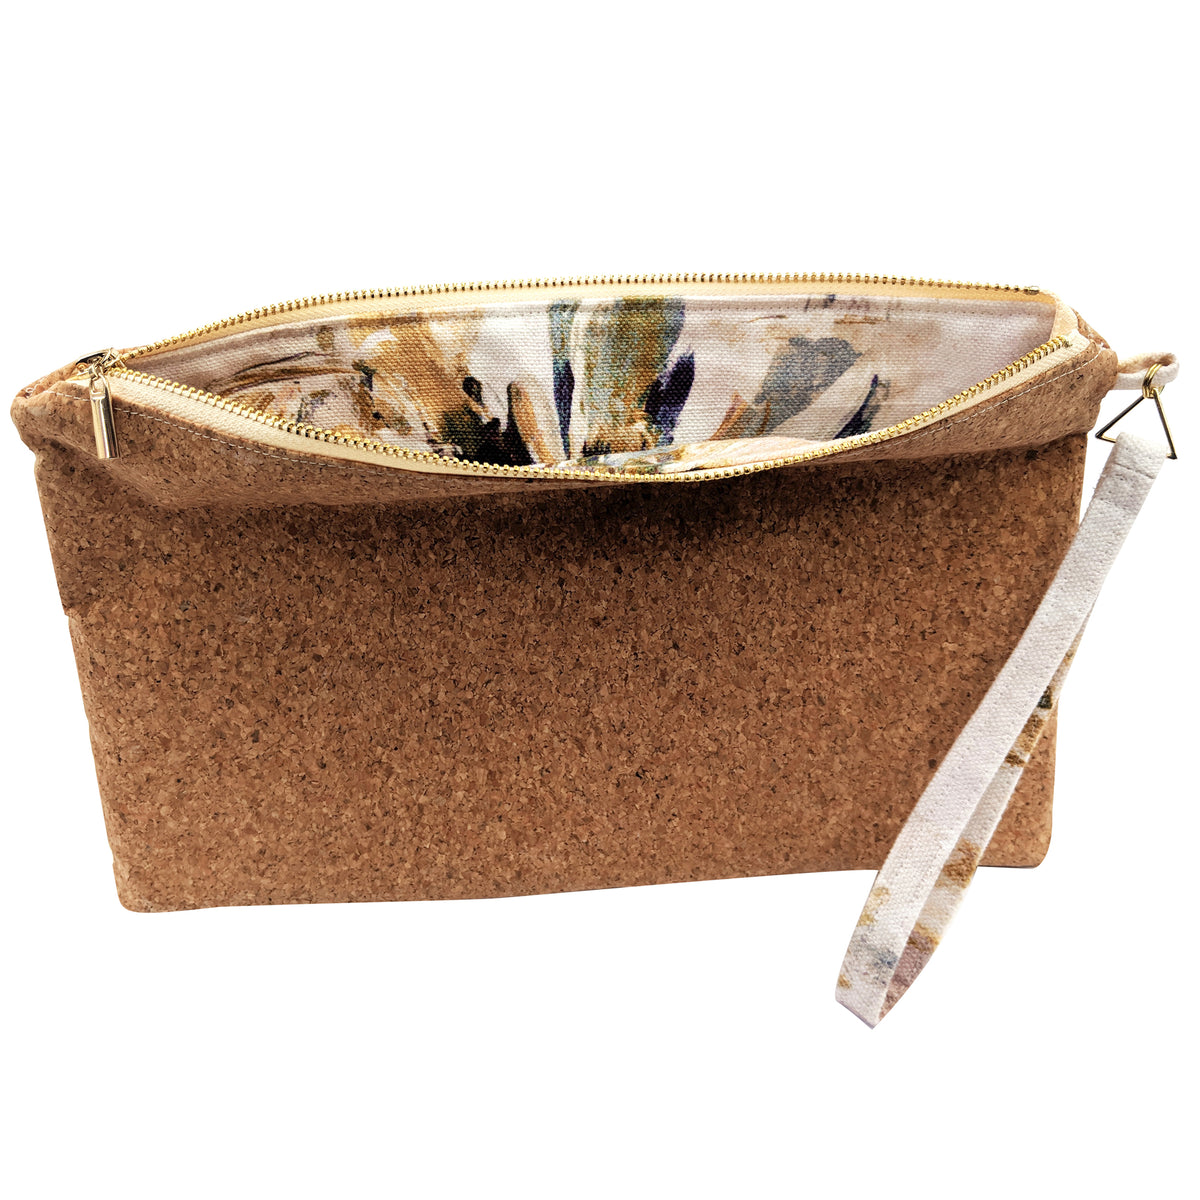 Cork Midi Clutch Bag - Limited Edition